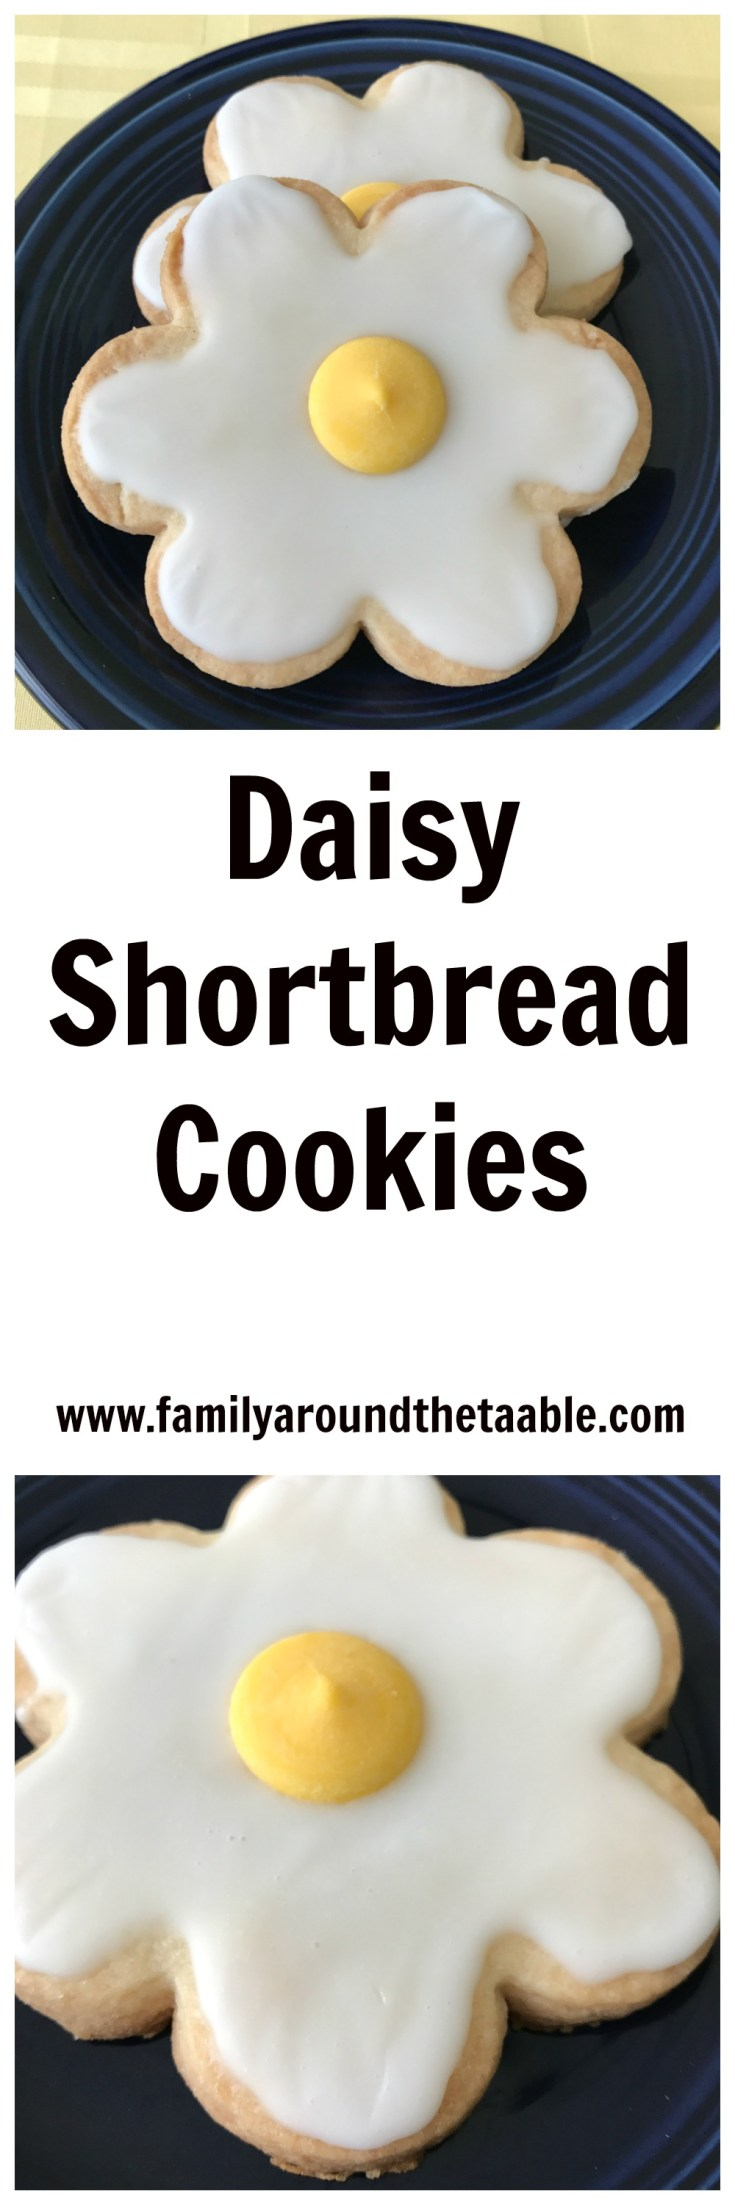 Daisy shortbread cookies are perfect for wedding showers, baby showers and to welcome spring.